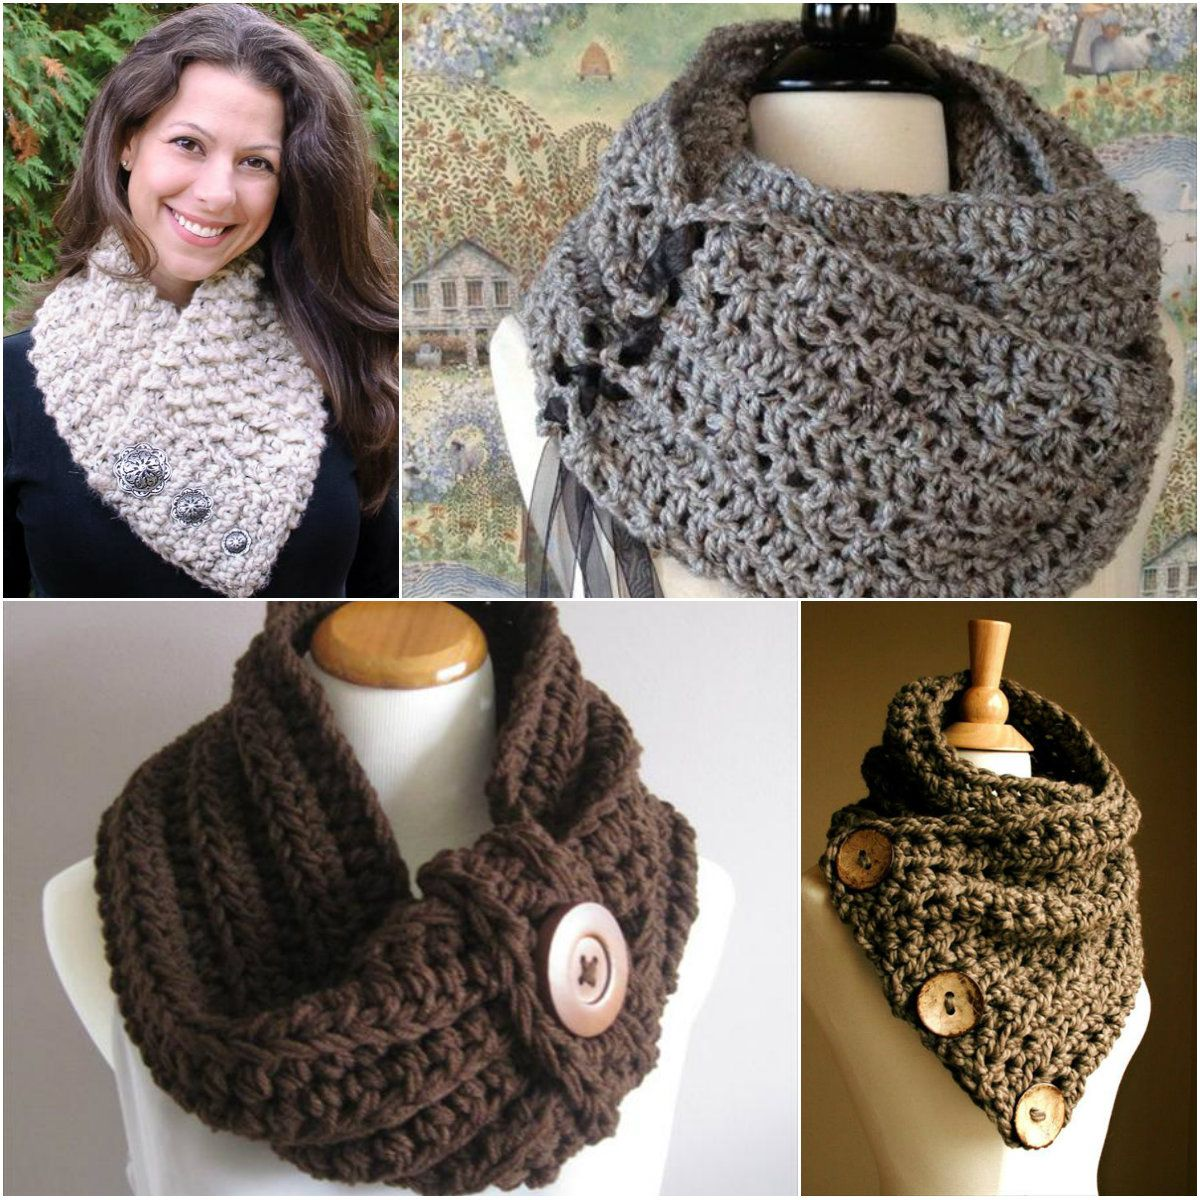 10 distinctive and free crochet cowl video patterns 10 distinctive and free crochet cowl video patterns 1001diydesigns bankloansurffo Gallery